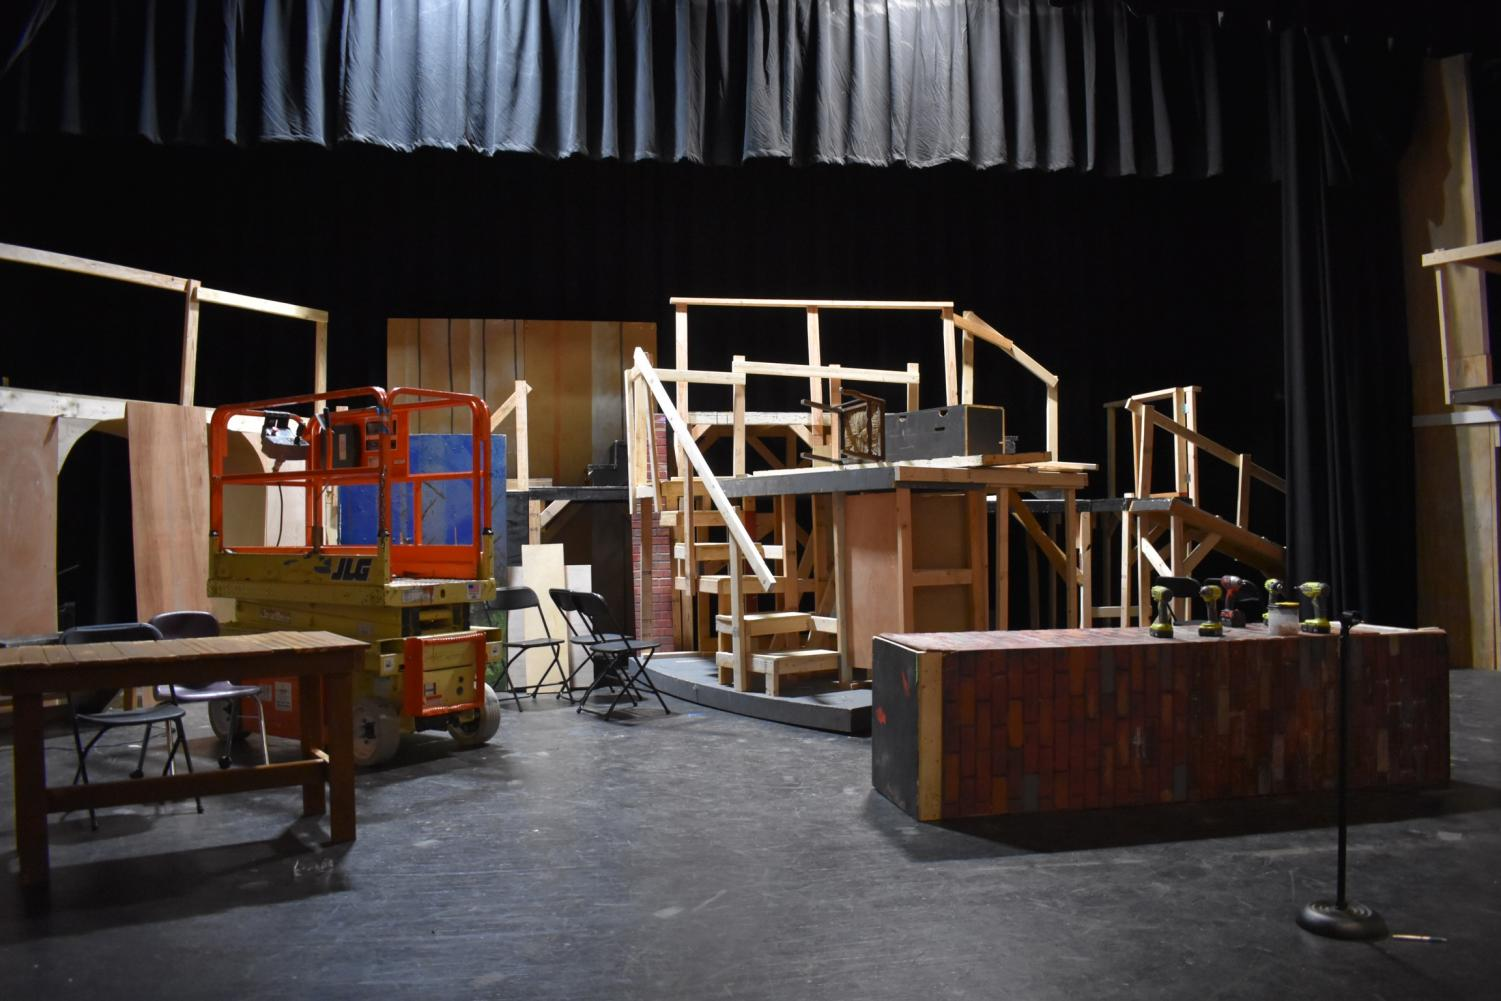 The+main+set+for+%E2%80%9CSweeney+Todd%E2%80%9D+was+under+construction+in+the+Vincent+Murray+Auditorium+before+the+show+was+postponed+indefinitely+due+to+COVID-19.